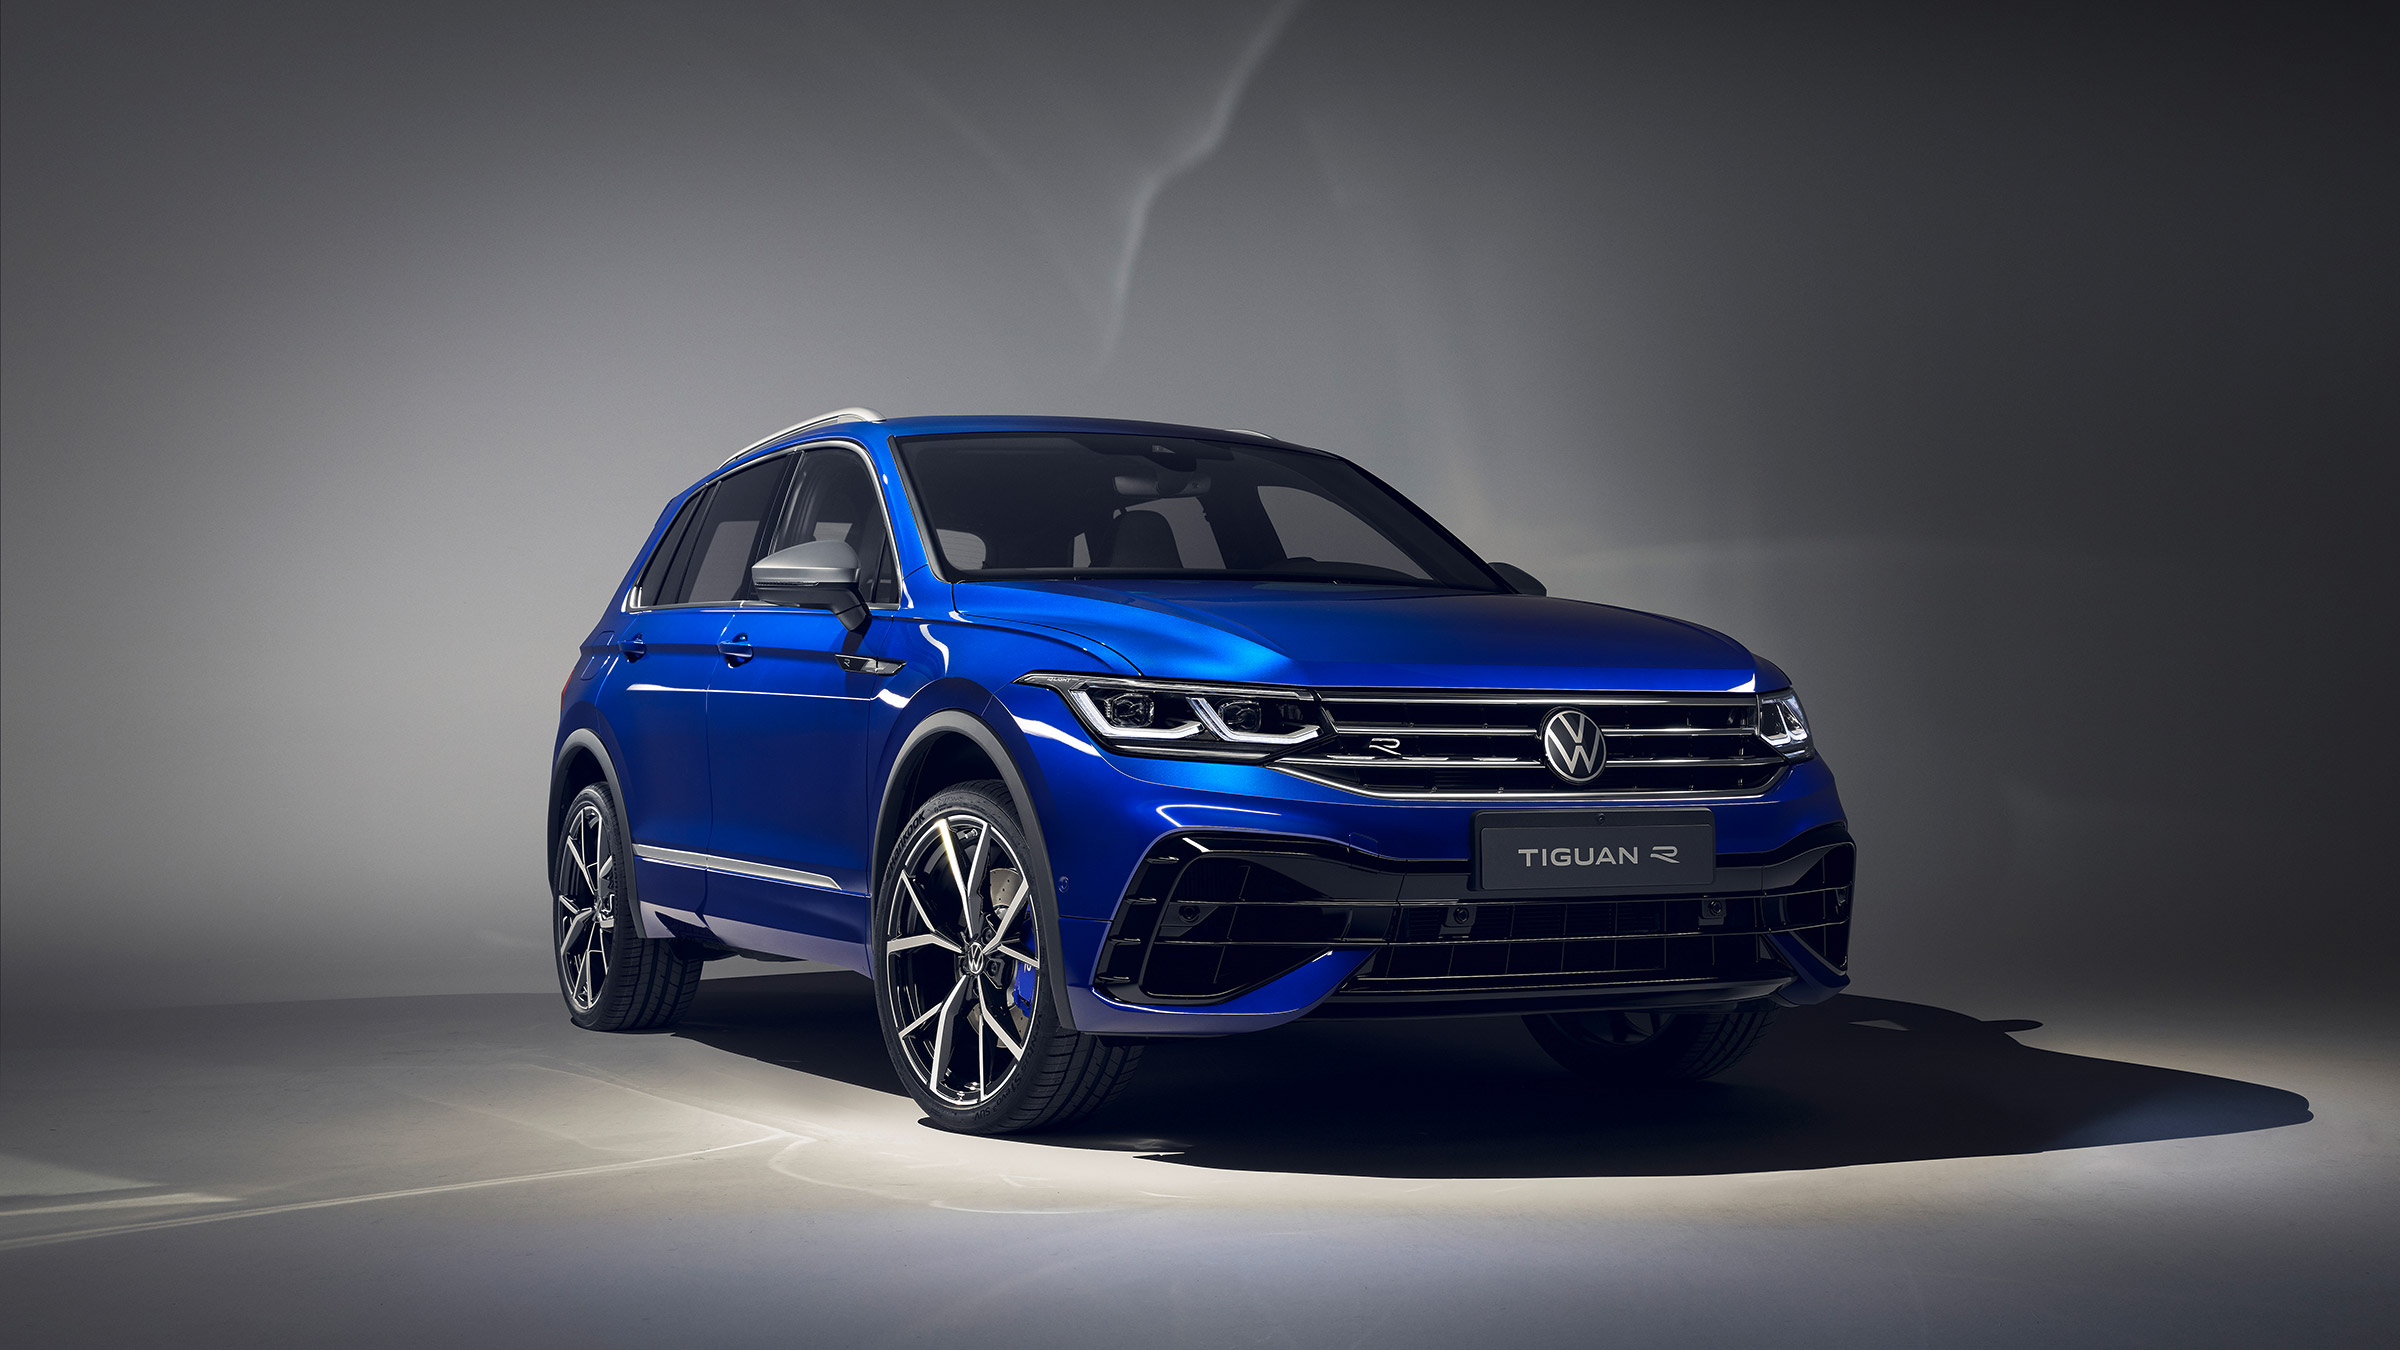 New 318bhp Volkswagen Tiguan R to join Arteon R and Golf R